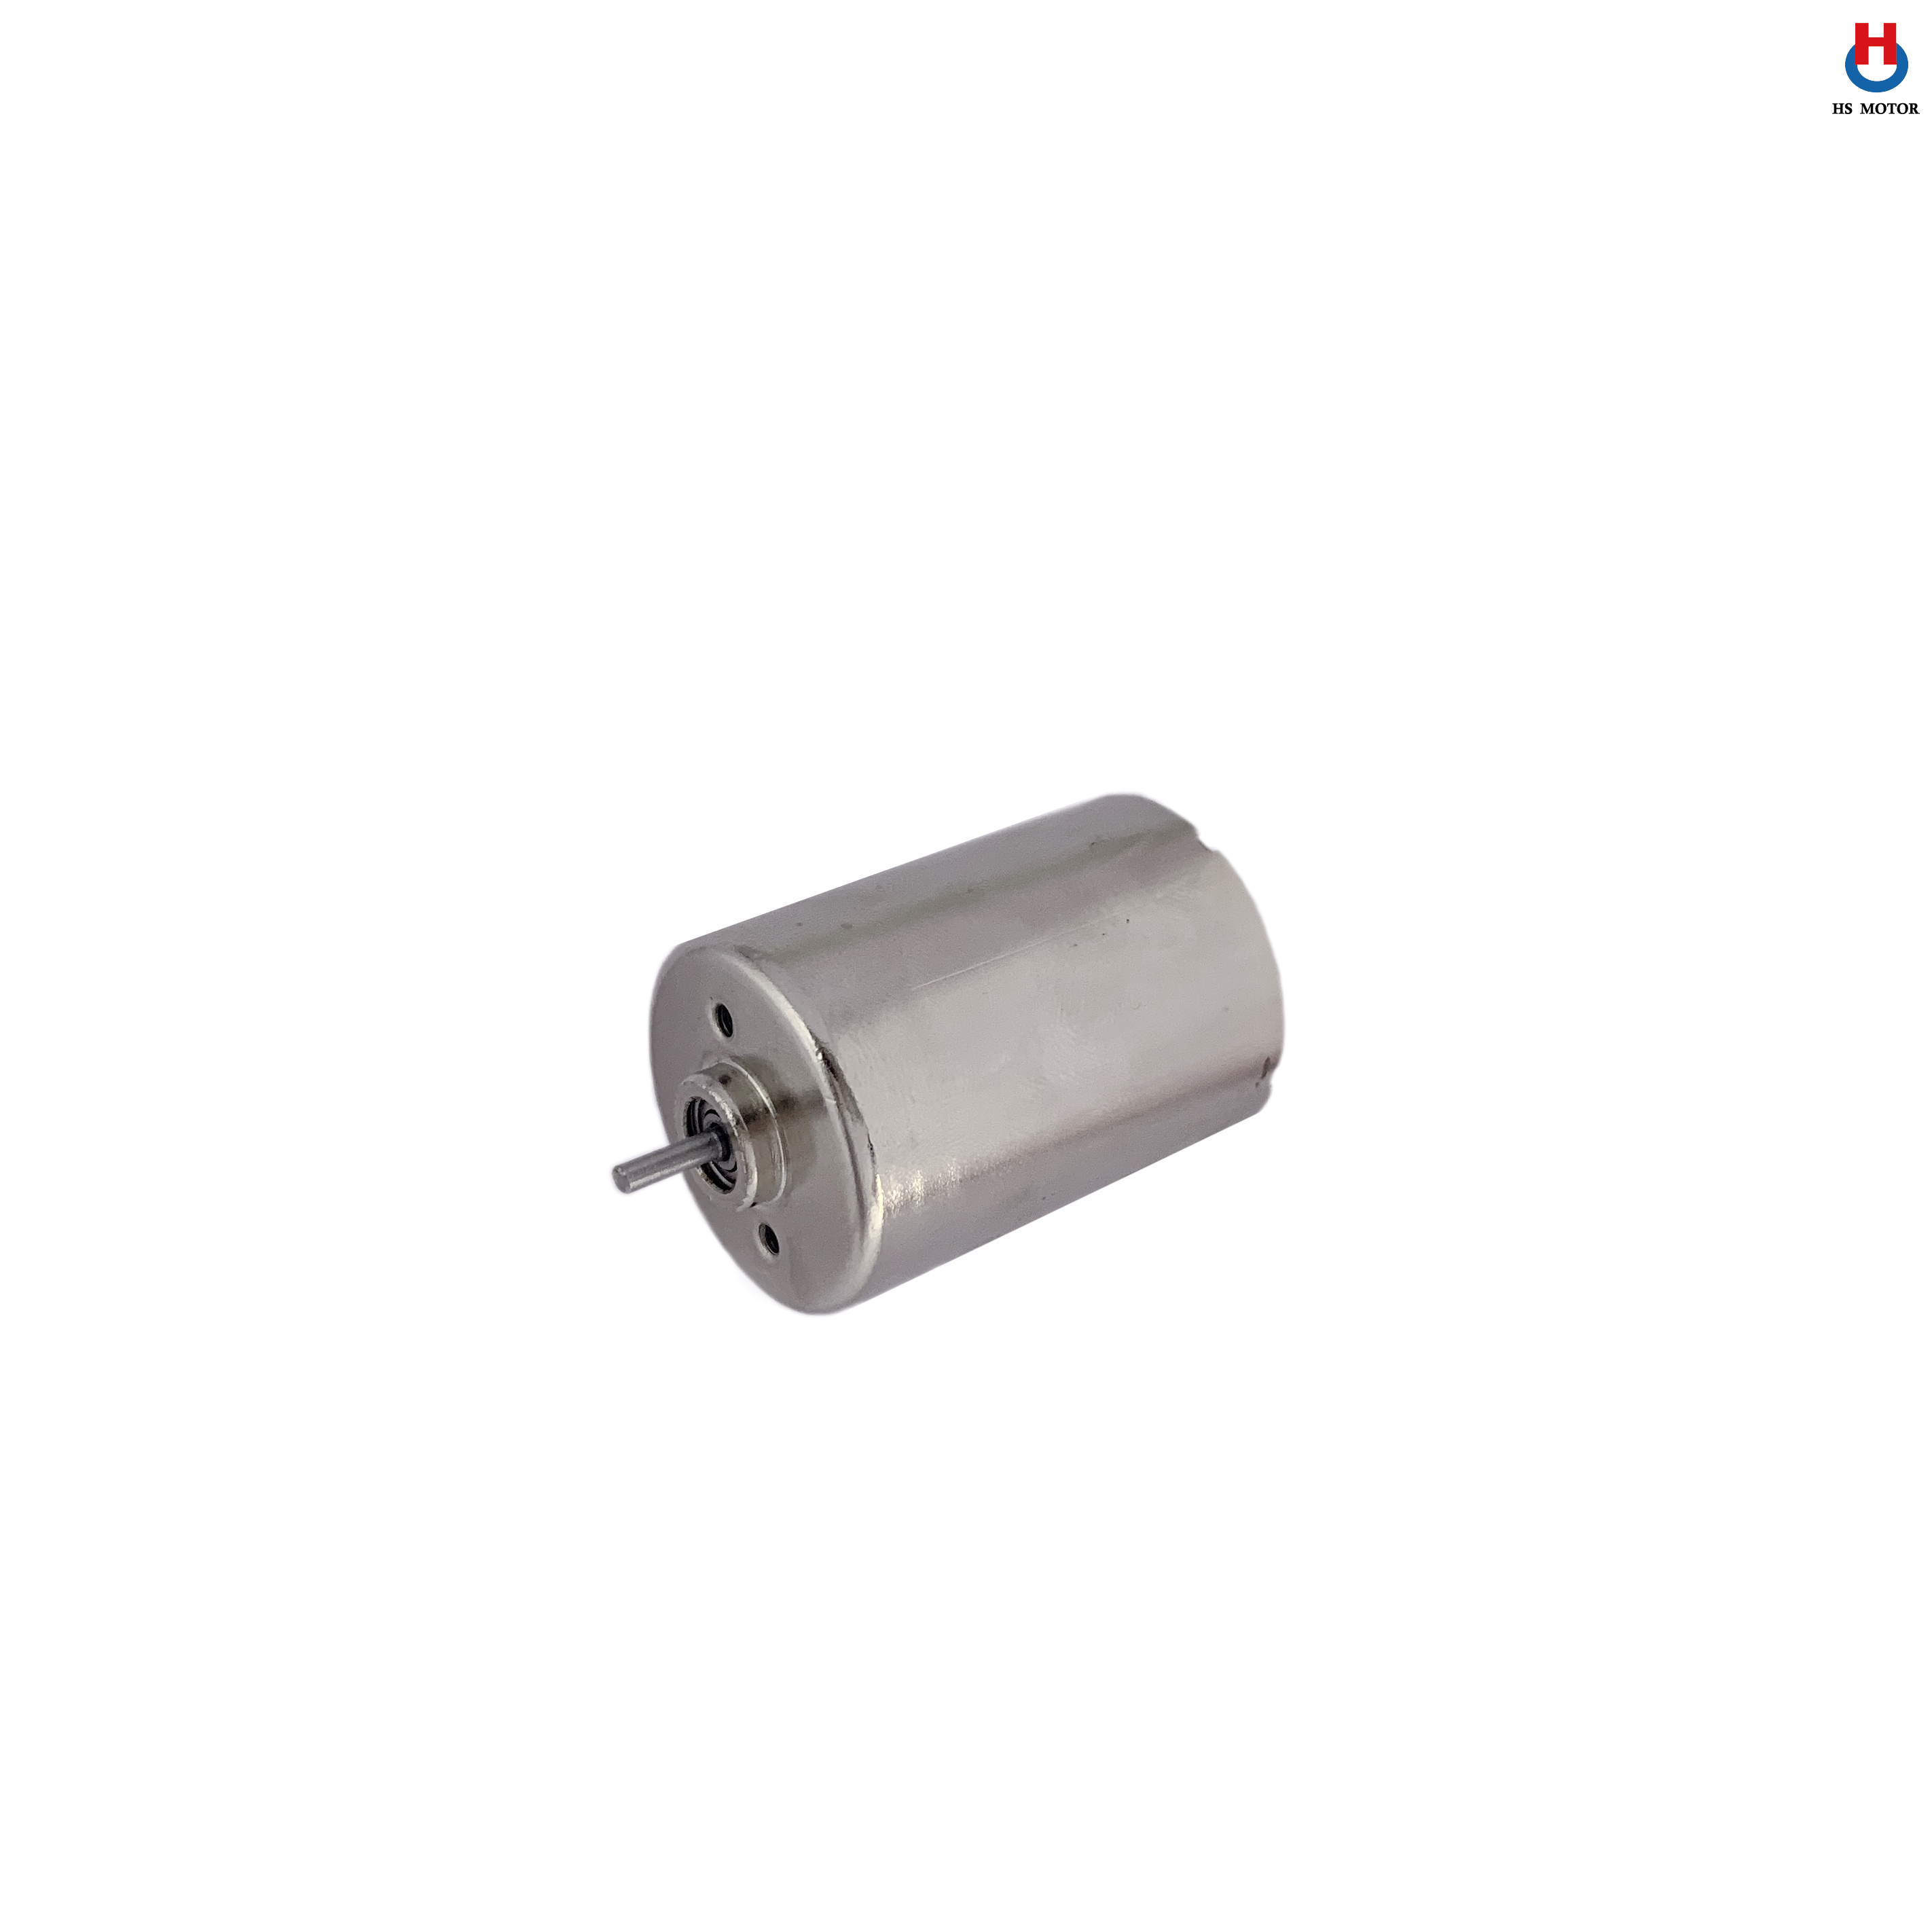 Brushless DC Motor HSBLDC-2838